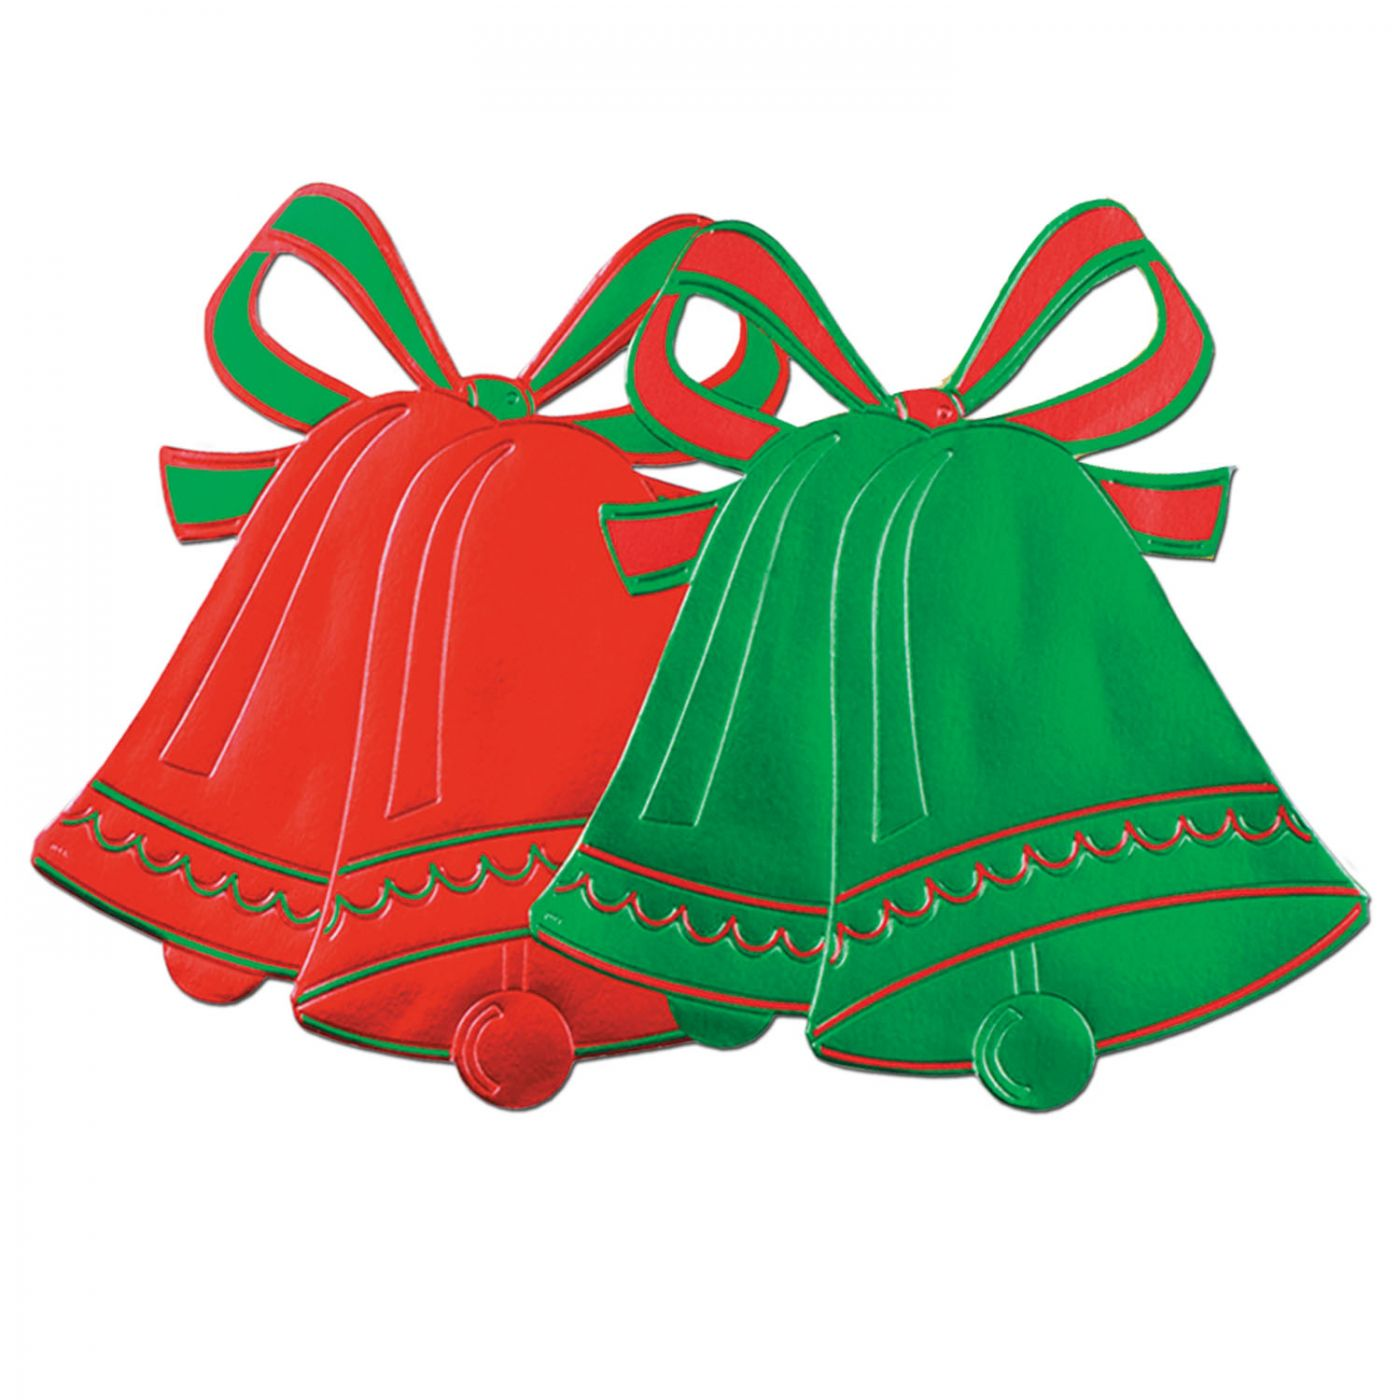 Foil Christmas Bell Silhouettes (24) image